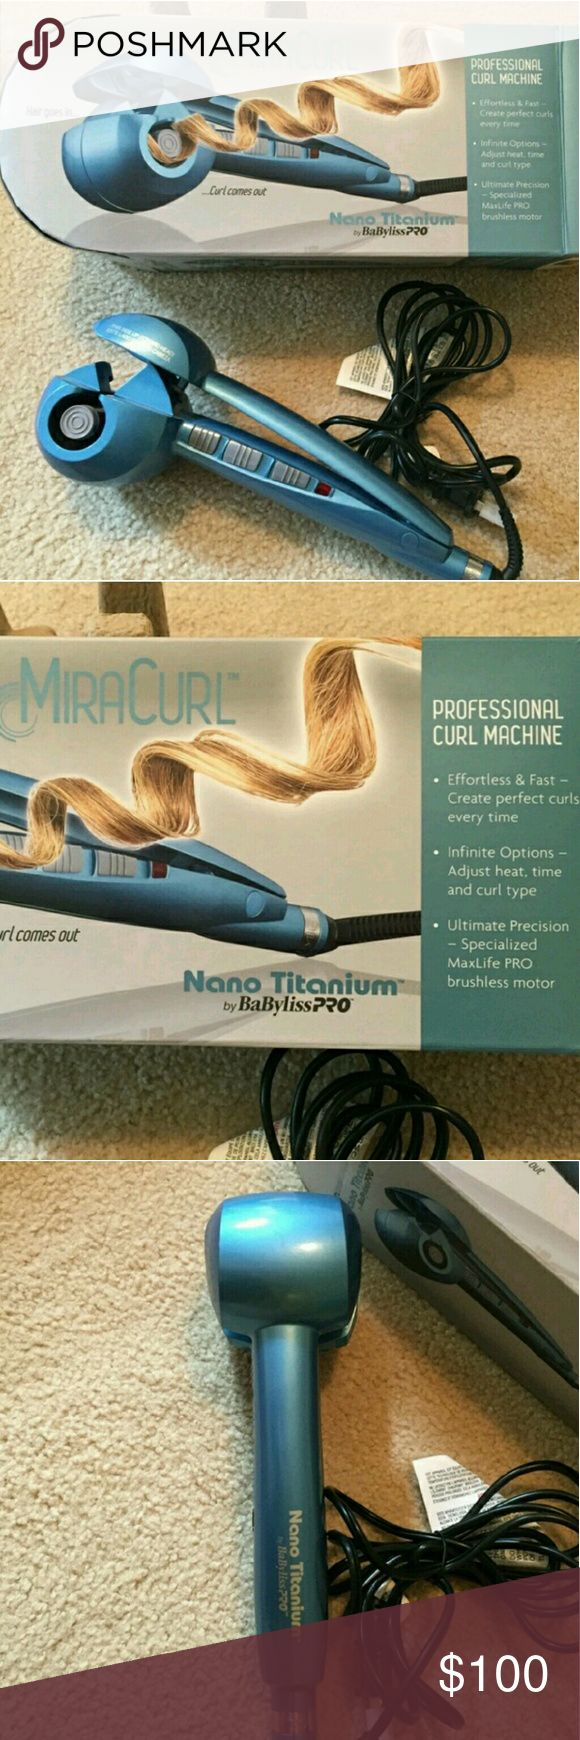 Babyliss Pro MiraCurl Professional Curl Machine Used once, excellent condition like new.  Original price $200, now selling 50%off - $100 Babyliss Makeup Brushes & Tools